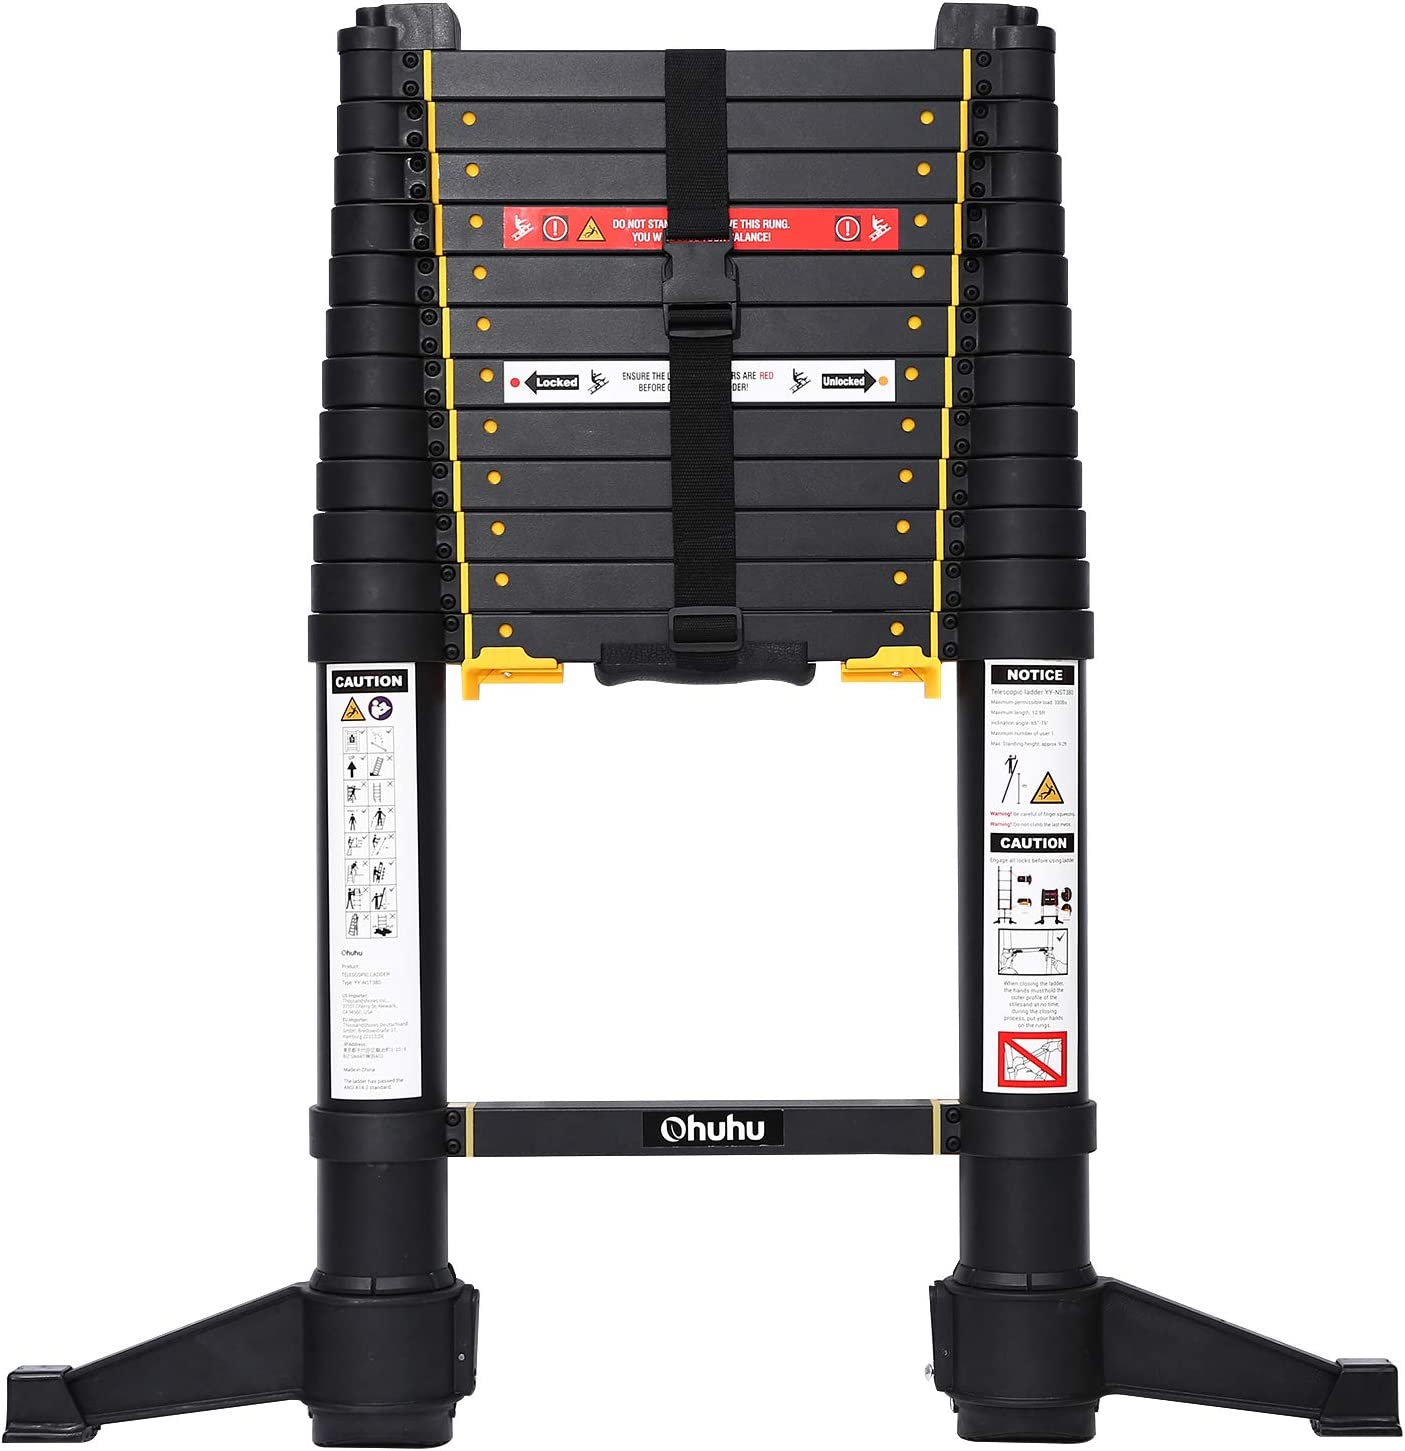 Ohuhu 12.5 FT Premium Aluminum Telescoping Ladder, ONE-Button RETRACTION ANSI Certified Patented Design Extension Ladder, 2020 All New Heavy Duty Extendable Telescopic Ladder with 330 Pound Capacity - -